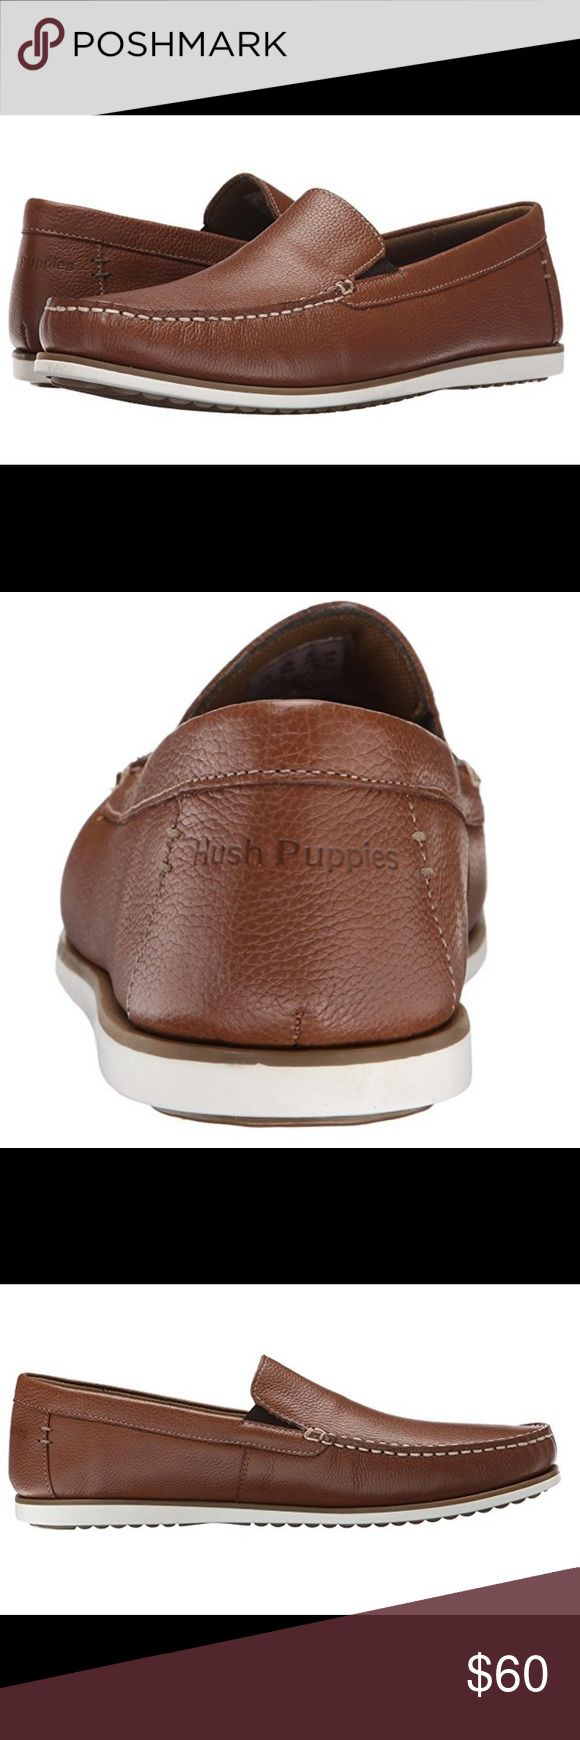 Hush Puppies Men's Bob Portland Slip-on Loafer Suede/Leather Imported Rubber sole Detailed with a soft waxy pebbled full grain upper leather brushed to a fine luster finish Leather lining (suede upper) or mesh lining (leather upper) for soft comfort against the foot Leather covered Ethylene vinyl acetate cushioned sock Hush Puppies Shoes Loafers & Slip-Ons